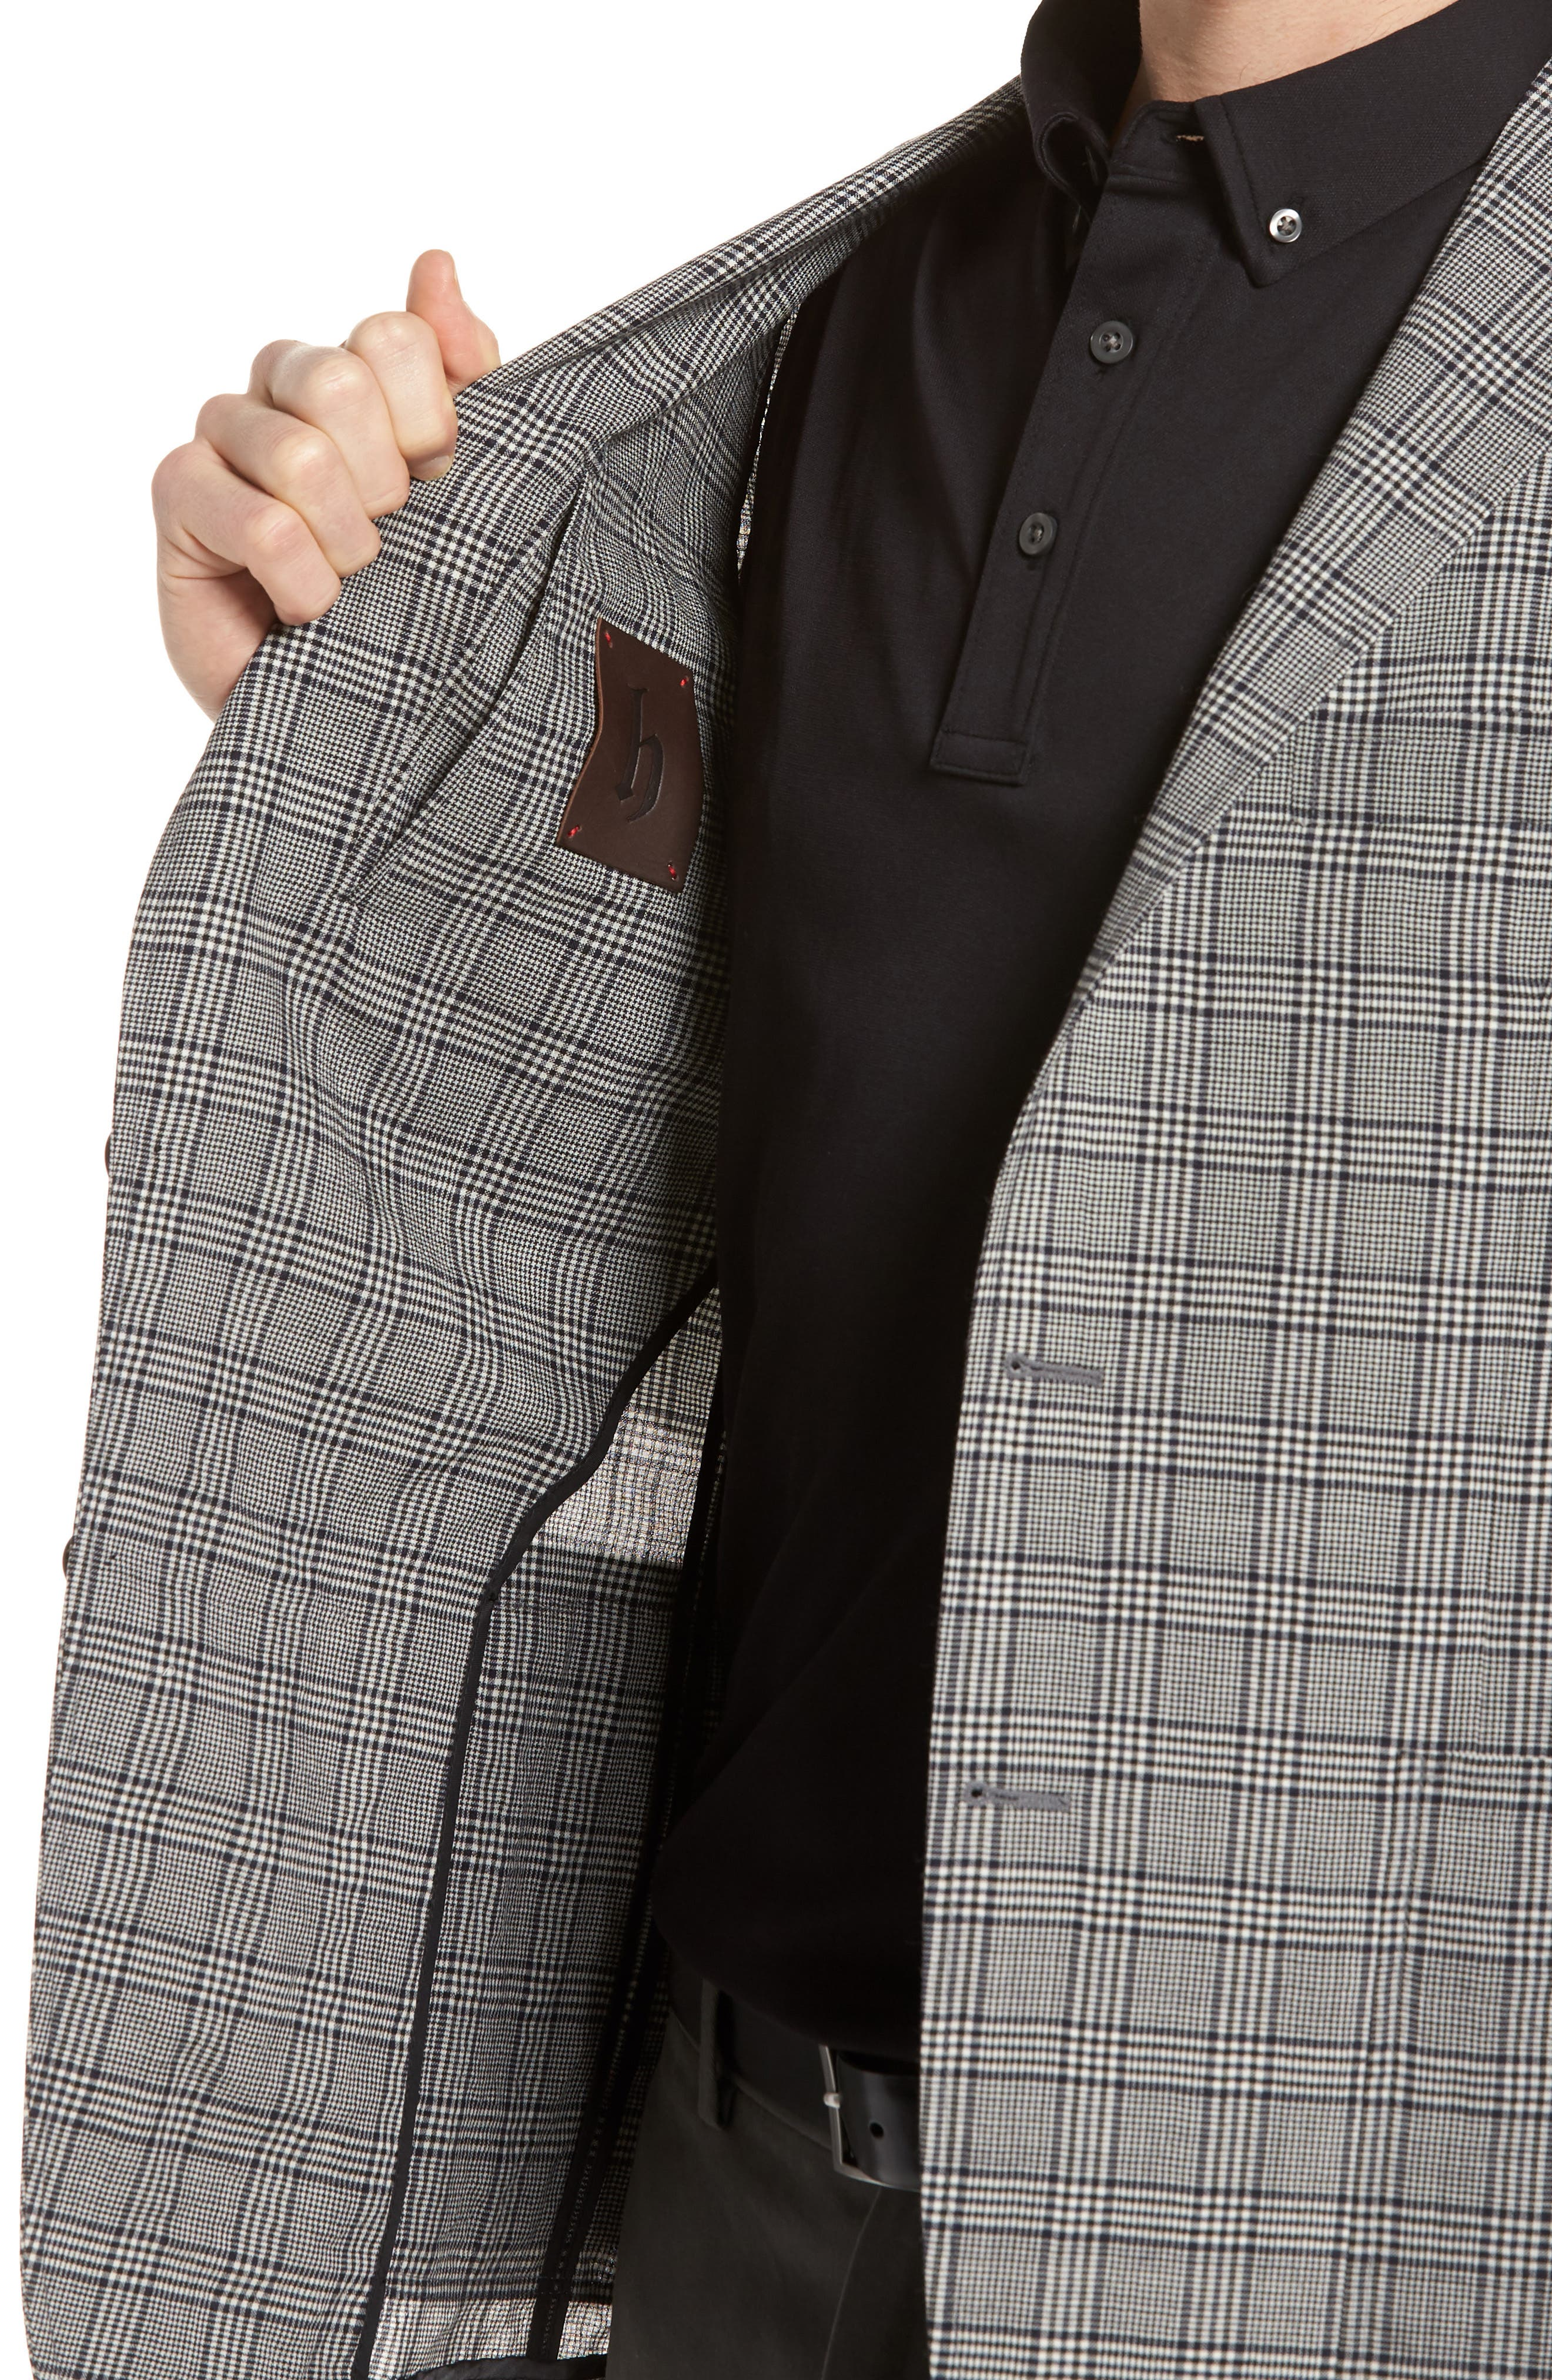 Modern Fit Plaid Wool Sport Coat,                             Alternate thumbnail 4, color,